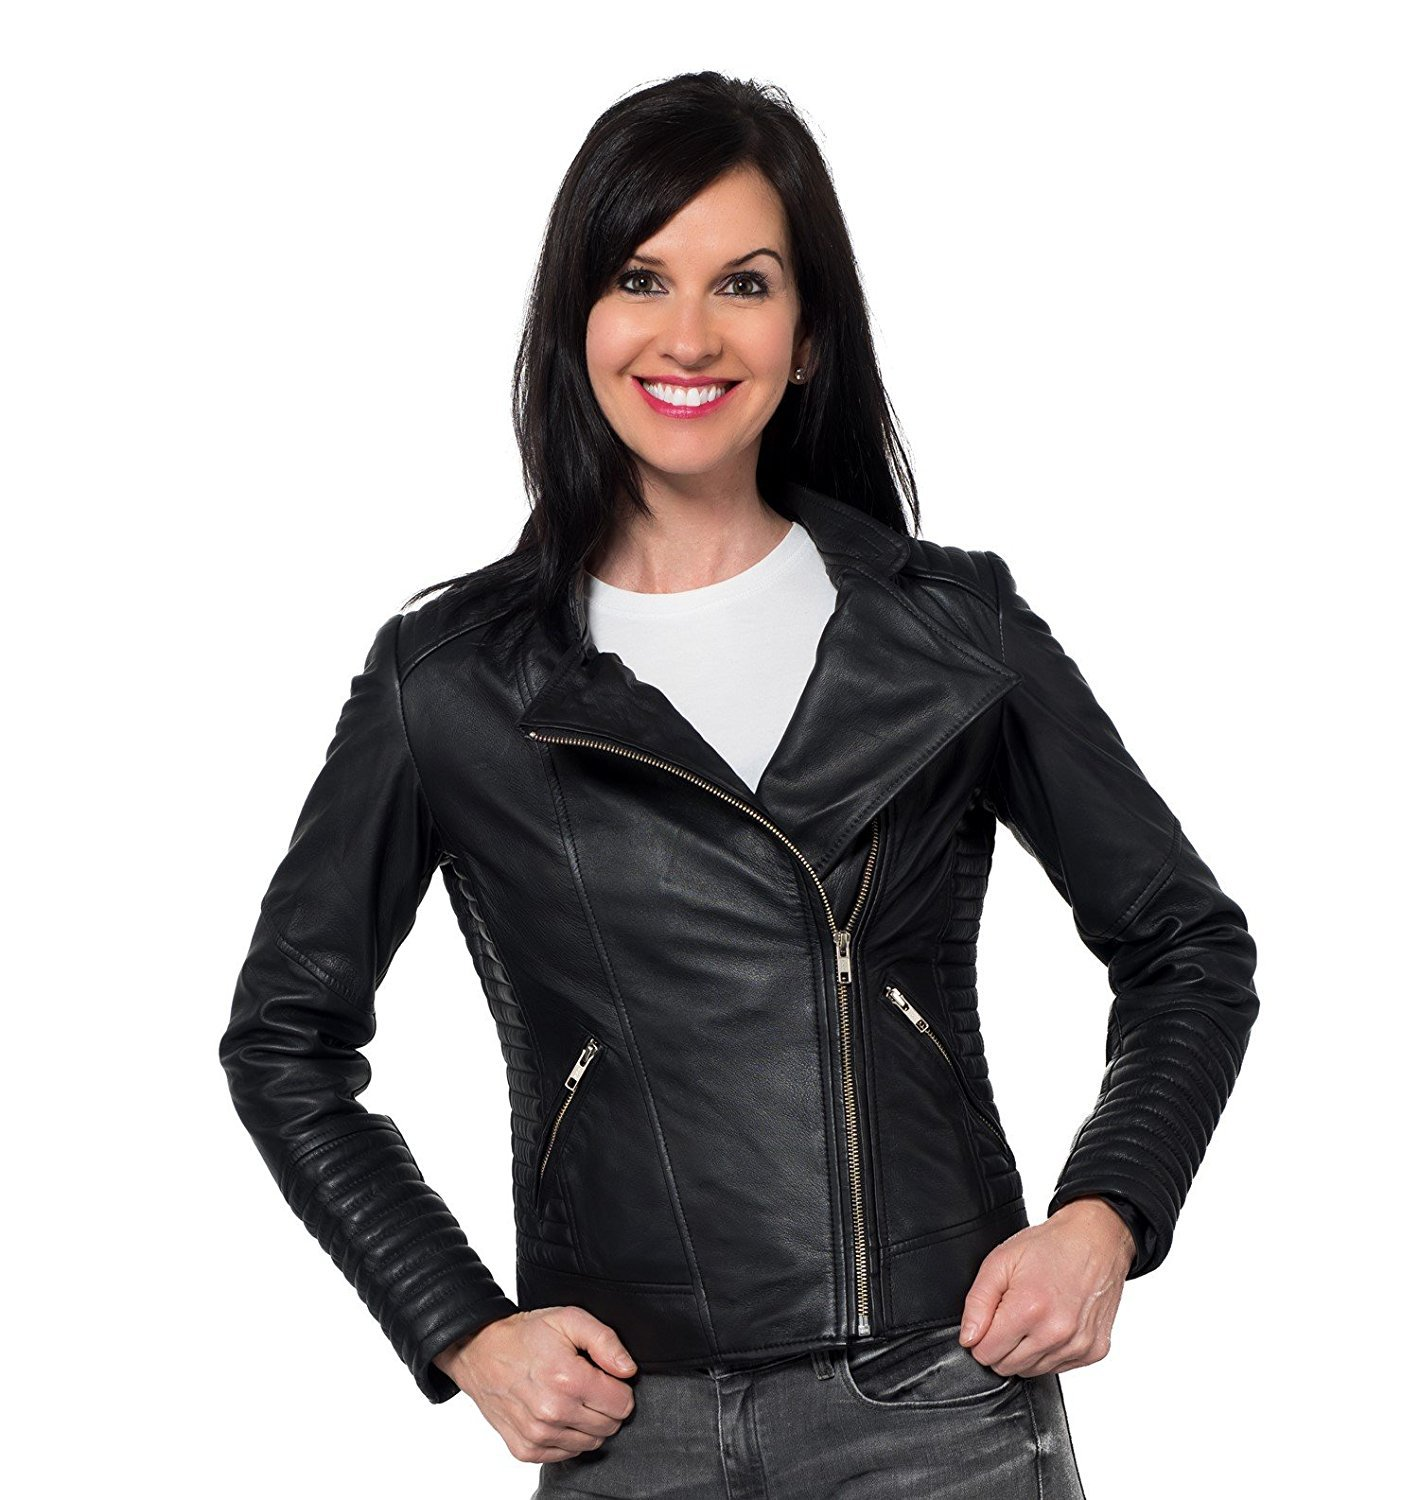 AMY PROTECTED LADIES MOTORCYCLE LEATHER JACKET